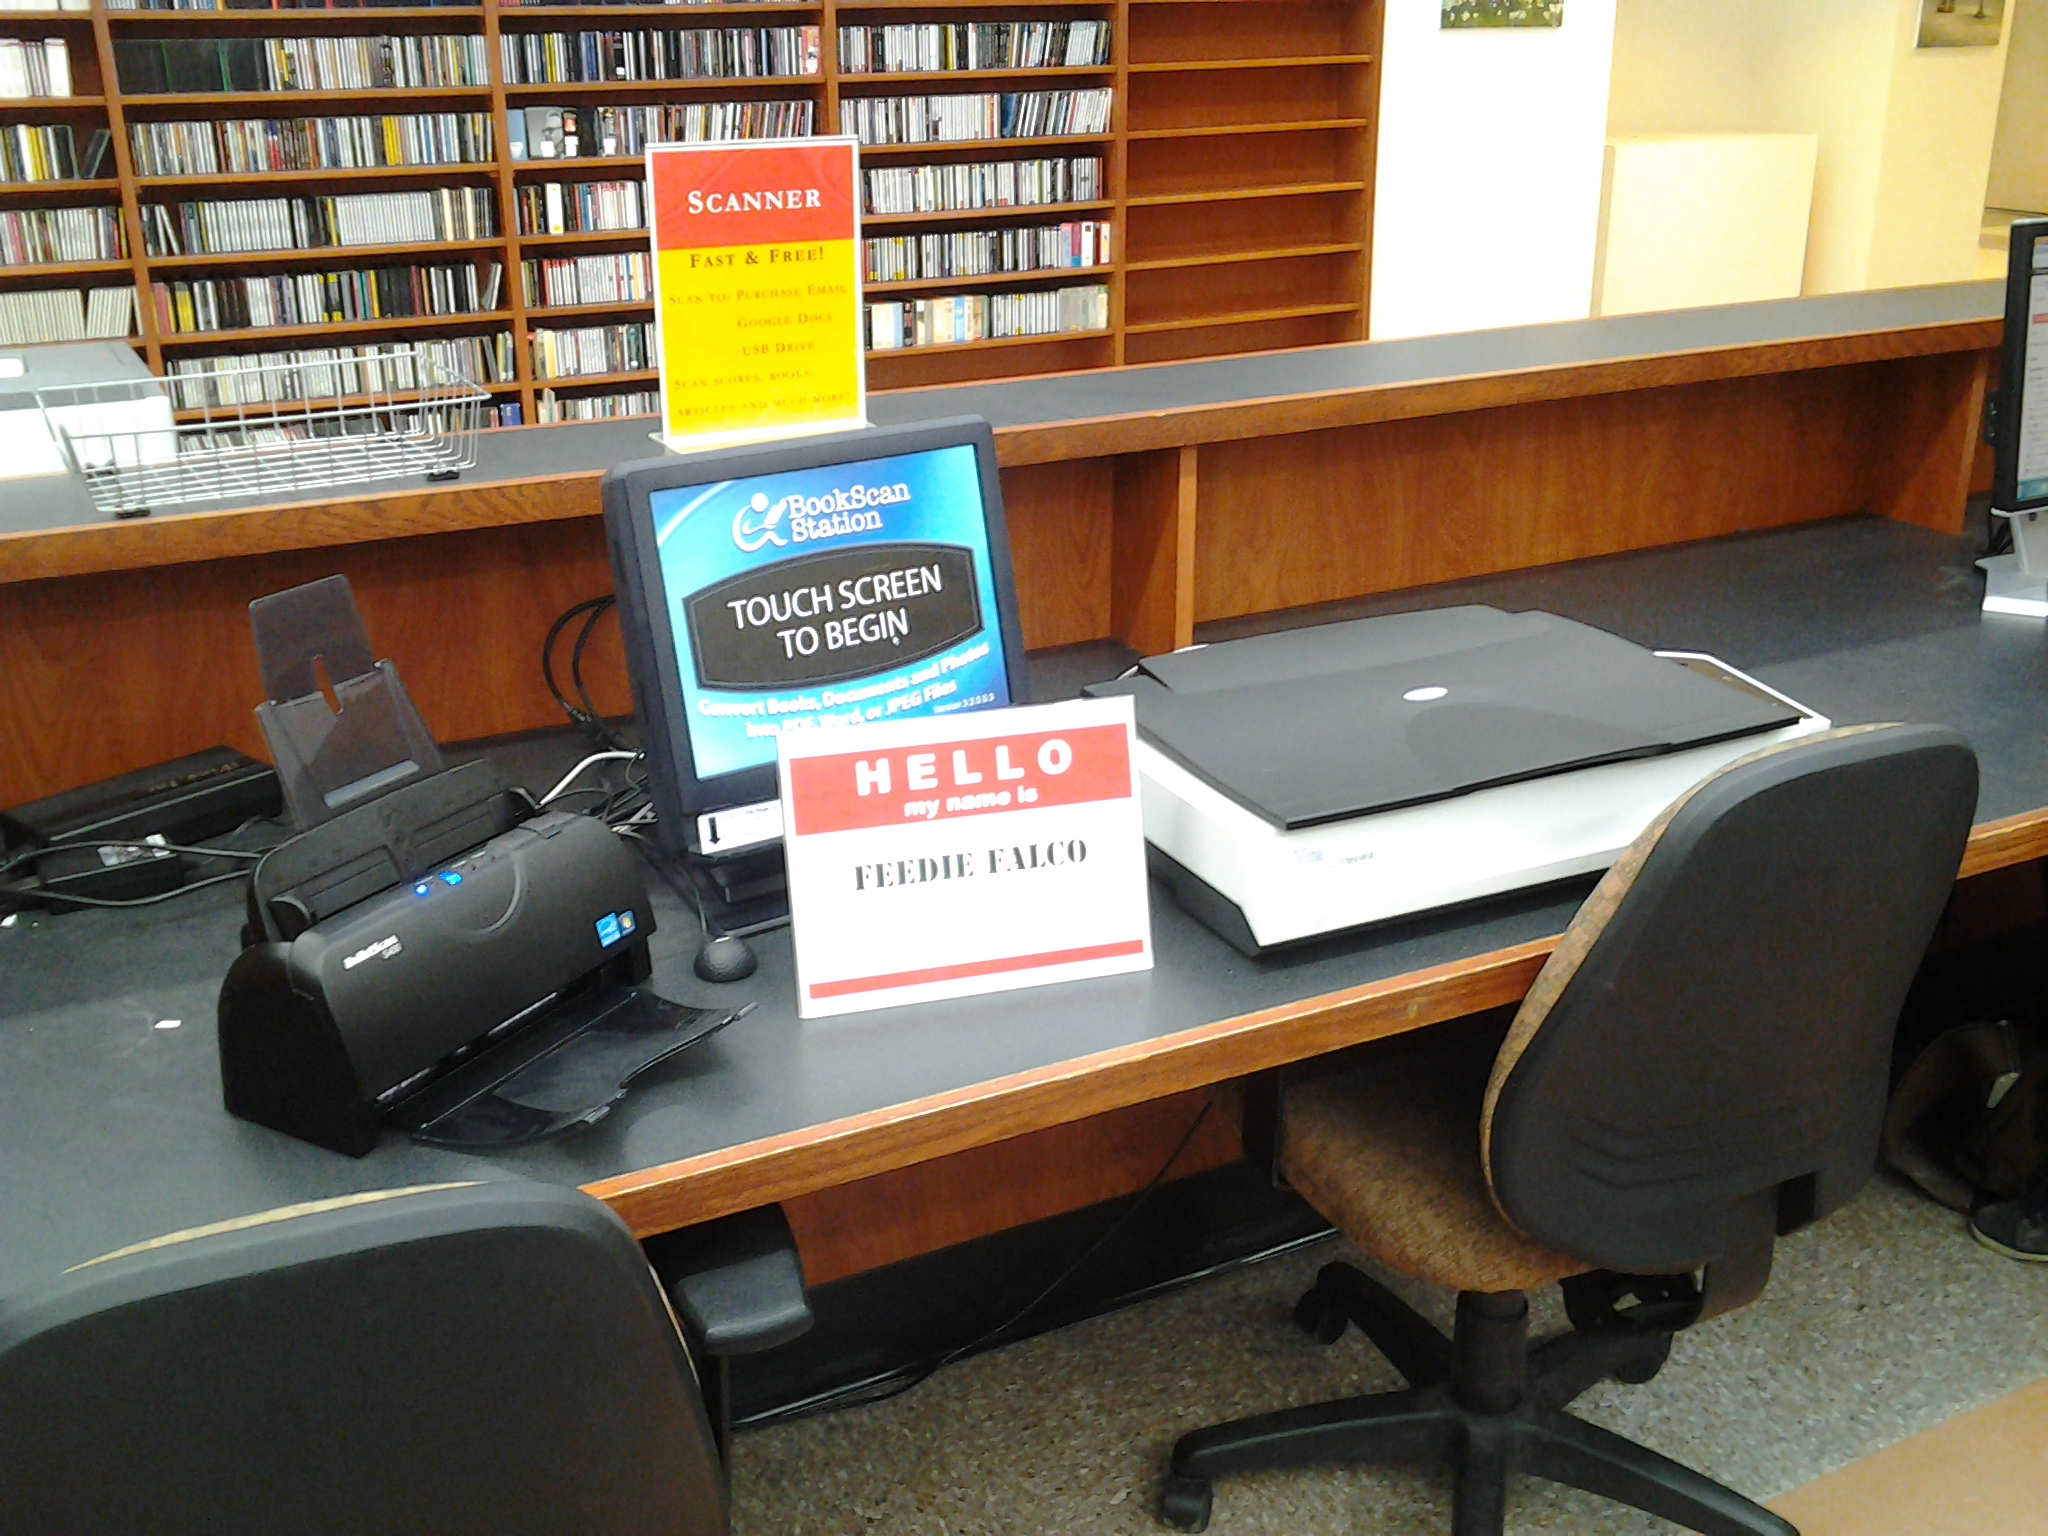 Feedey Falco, the second book scanning station.